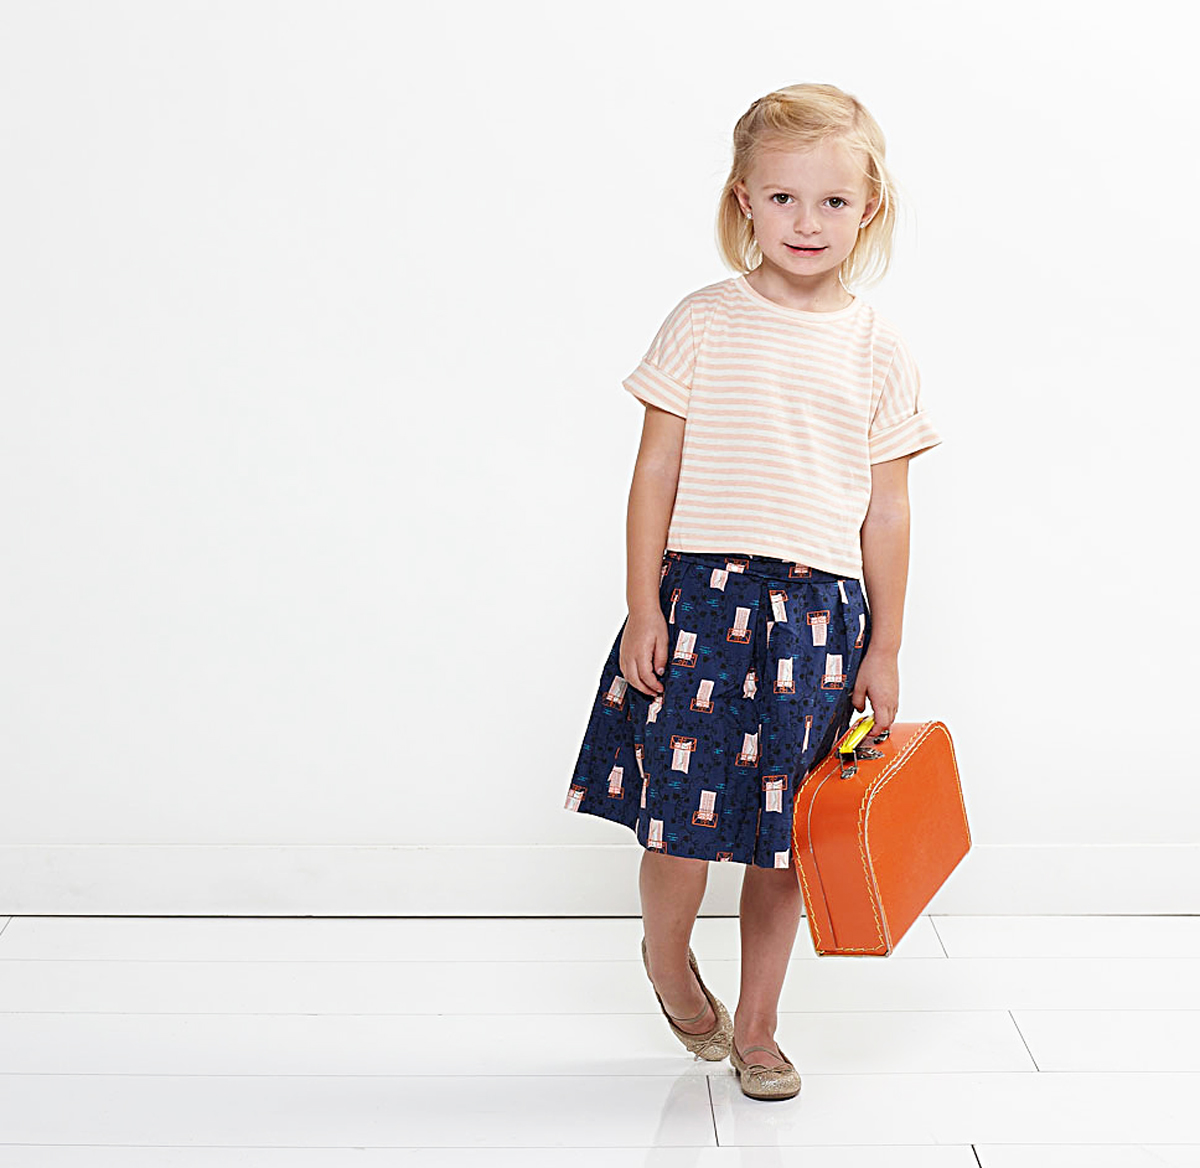 Introducing the Lunch Box Tee + Culottes Pattern